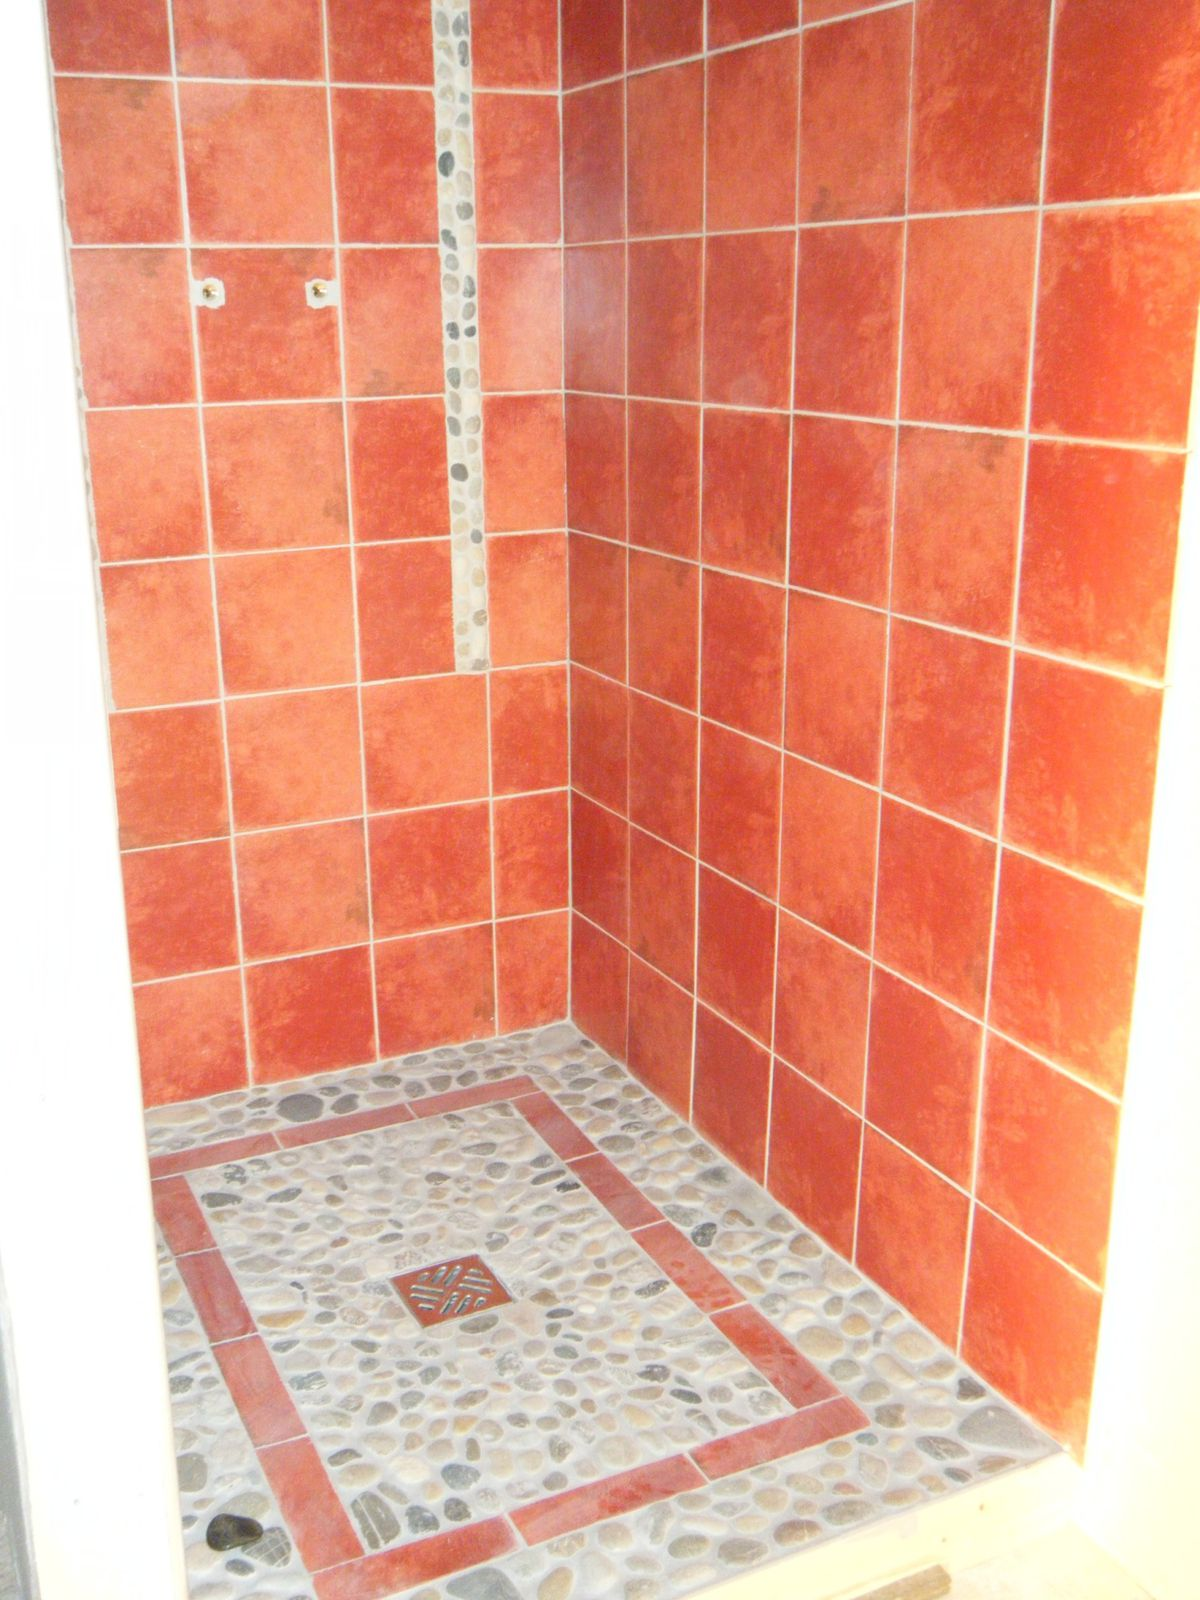 Album douche l 39 italienne tadelakt le blog de bill for Carrelage mauve salle bain